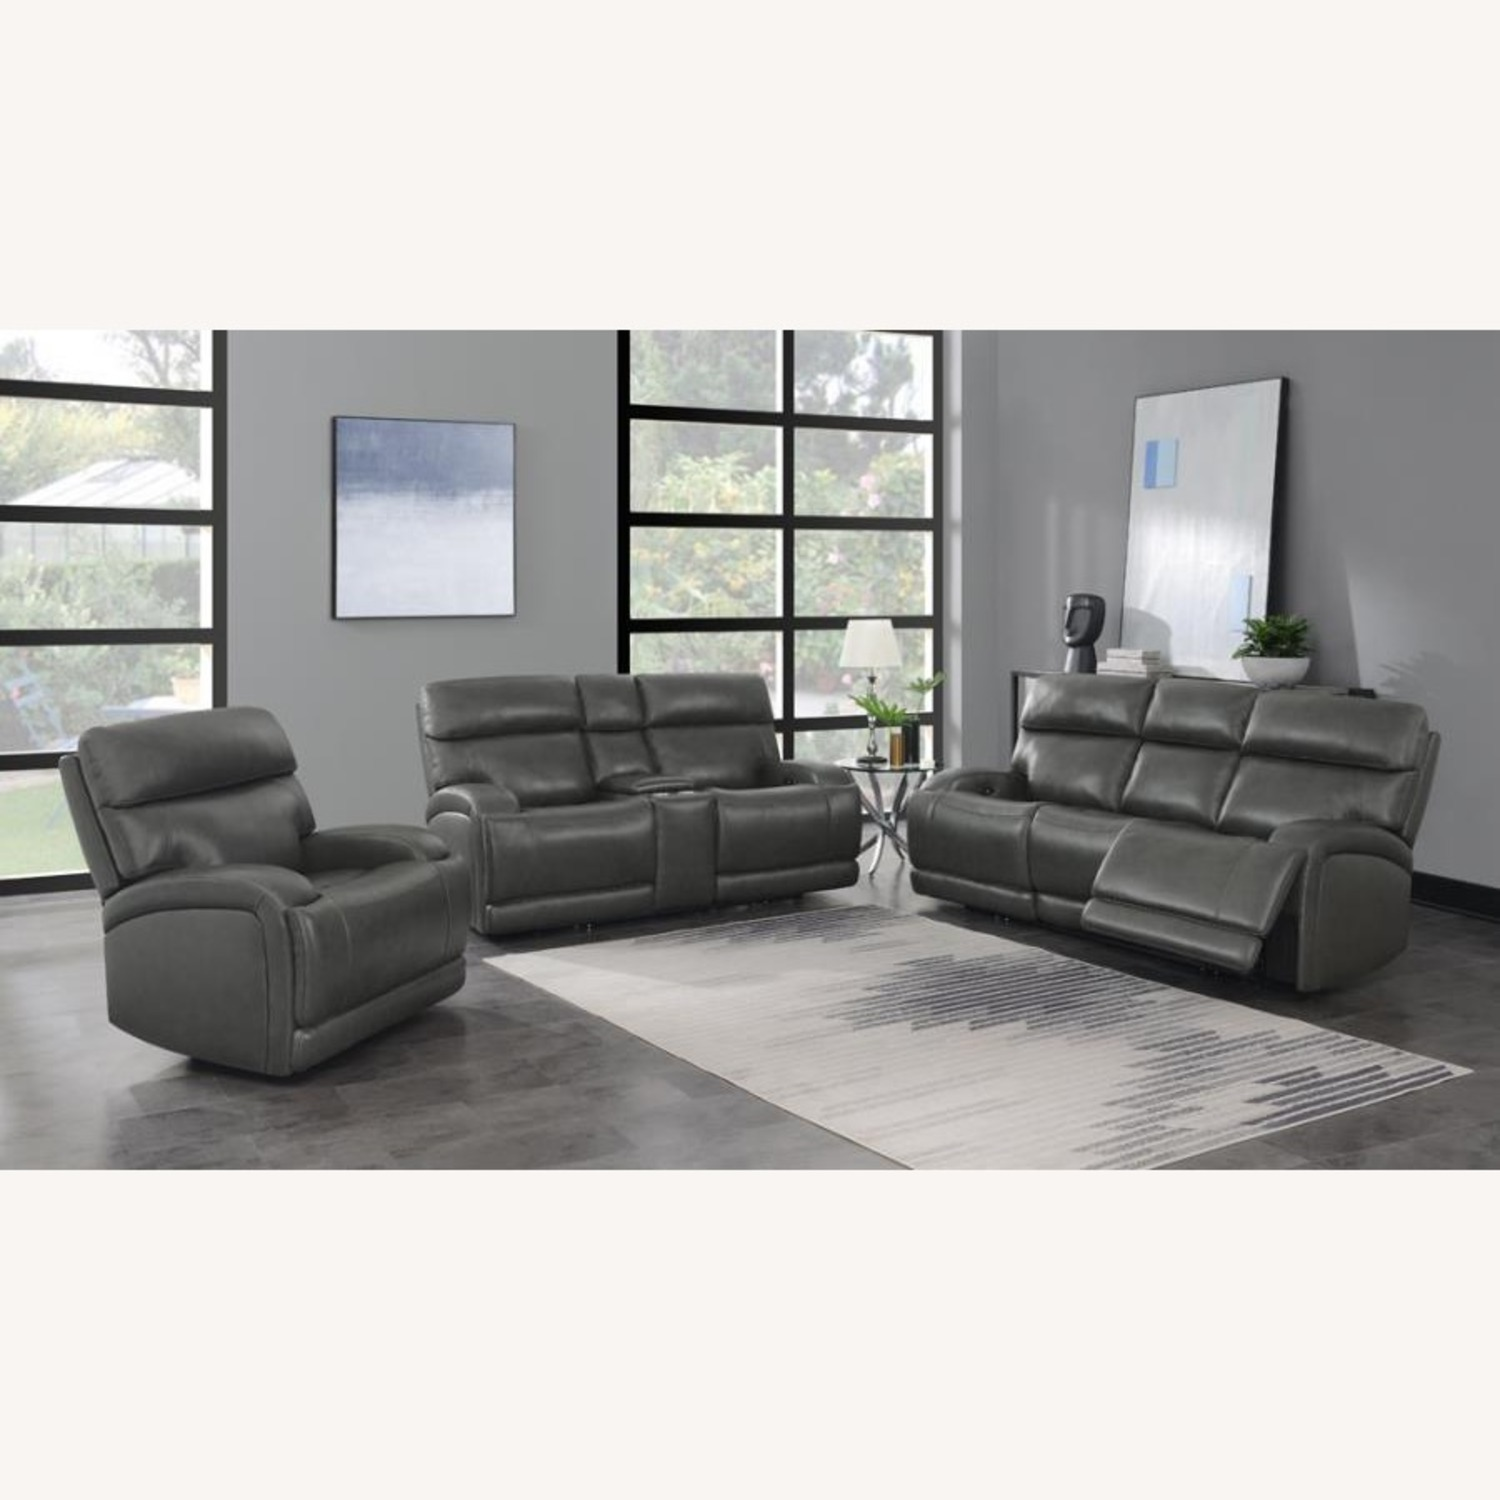 Power Recliner Chair In Charcoal Leatherette - image-8